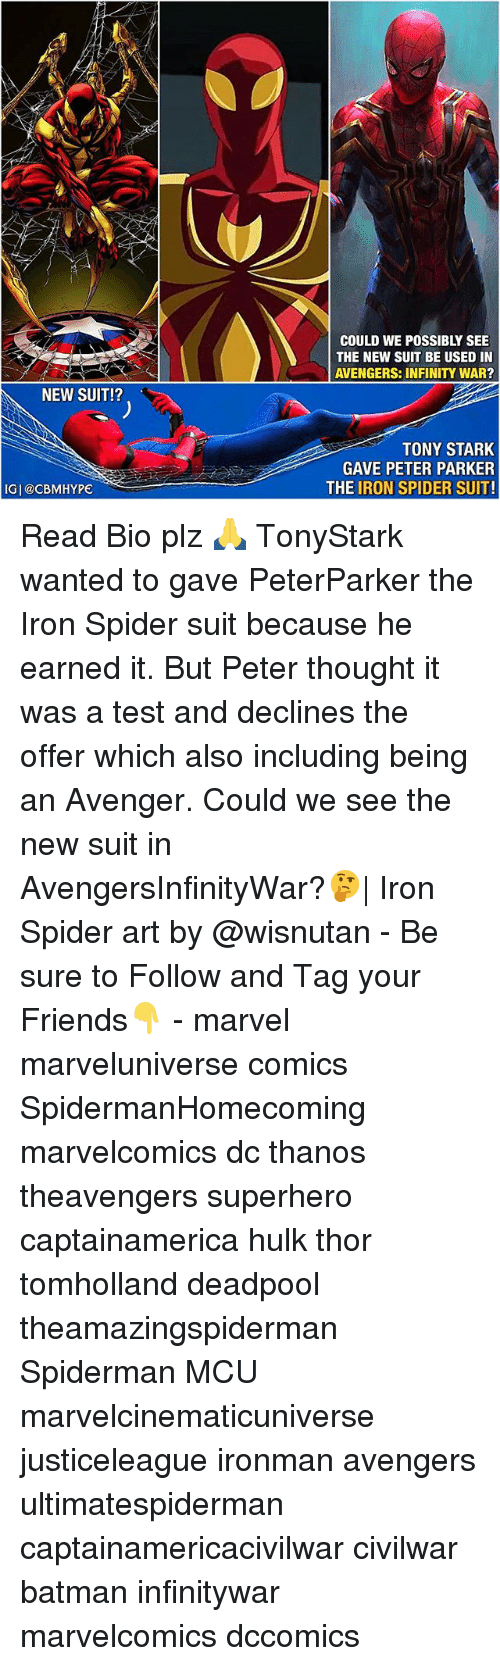 Batman, Earned It, and Friends: COULD WE POSSIBLY SEE  THE NEW SUIT BE USED IN  AVENGERS: INFINITY WAR?  NEW SUIT!?  TONY STARK  GAVE PETER PARKER  THE IRON SPIDER SUIT!  IG|@CBMHYPE Read Bio plz 🙏 TonyStark wanted to gave PeterParker the Iron Spider suit because he earned it. But Peter thought it was a test and declines the offer which also including being an Avenger. Could we see the new suit in AvengersInfinityWar?🤔| Iron Spider art by @wisnutan - Be sure to Follow and Tag your Friends👇 - marvel marveluniverse comics SpidermanHomecoming marvelcomics dc thanos theavengers superhero captainamerica hulk thor tomholland deadpool theamazingspiderman Spiderman MCU marvelcinematicuniverse justiceleague ironman avengers ultimatespiderman captainamericacivilwar civilwar batman infinitywar marvelcomics dccomics